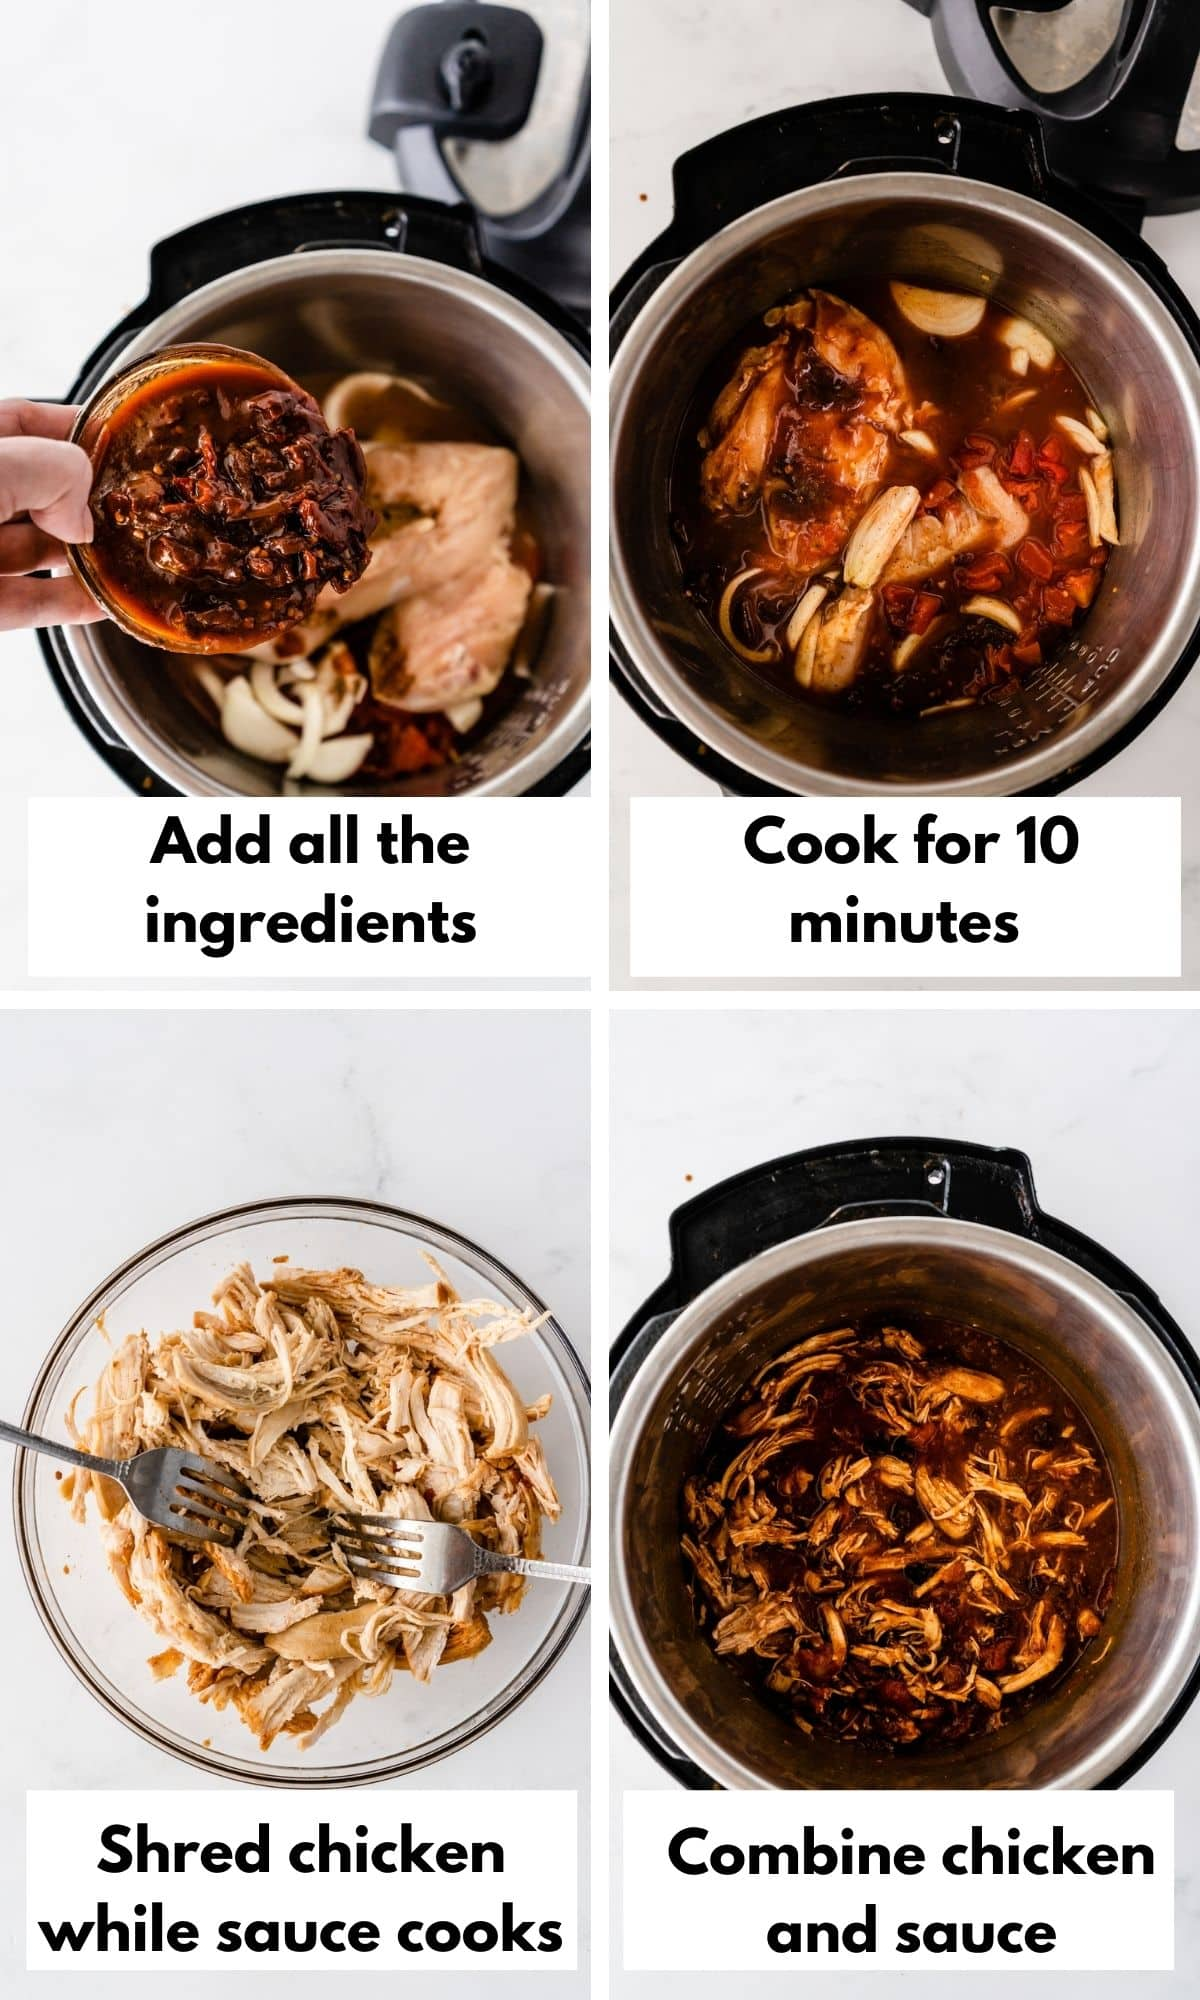 Pictures showing how to make the chicken tinga